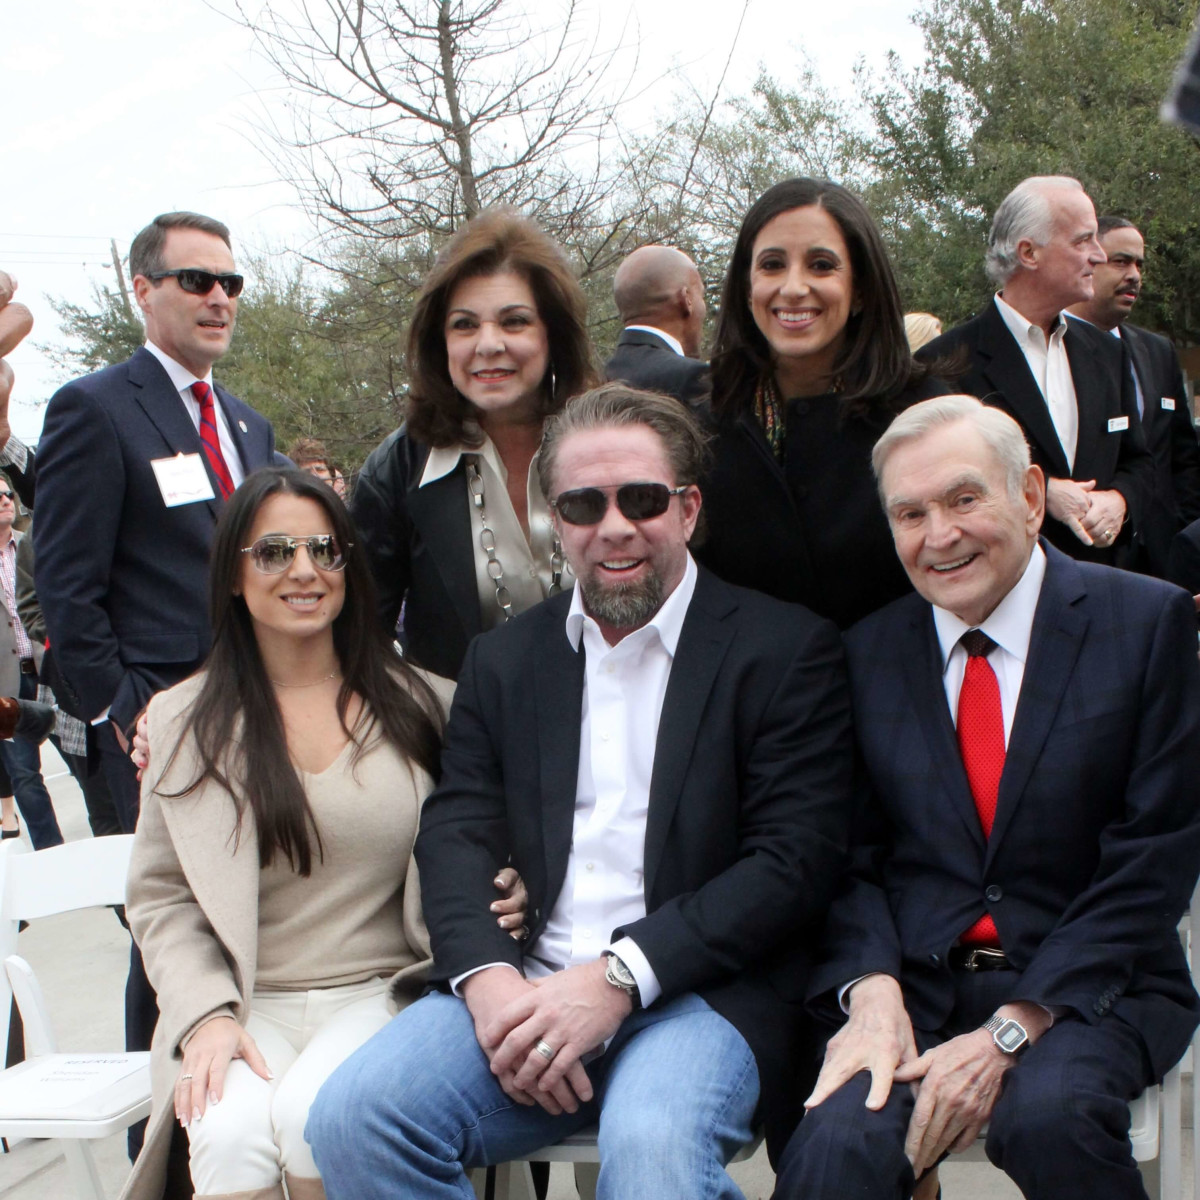 Laura Ward, Rania Mankarious, Rachael Bagwell, Jeff Bagwell, Dave Ward at dedication of new Crime Stoppers building